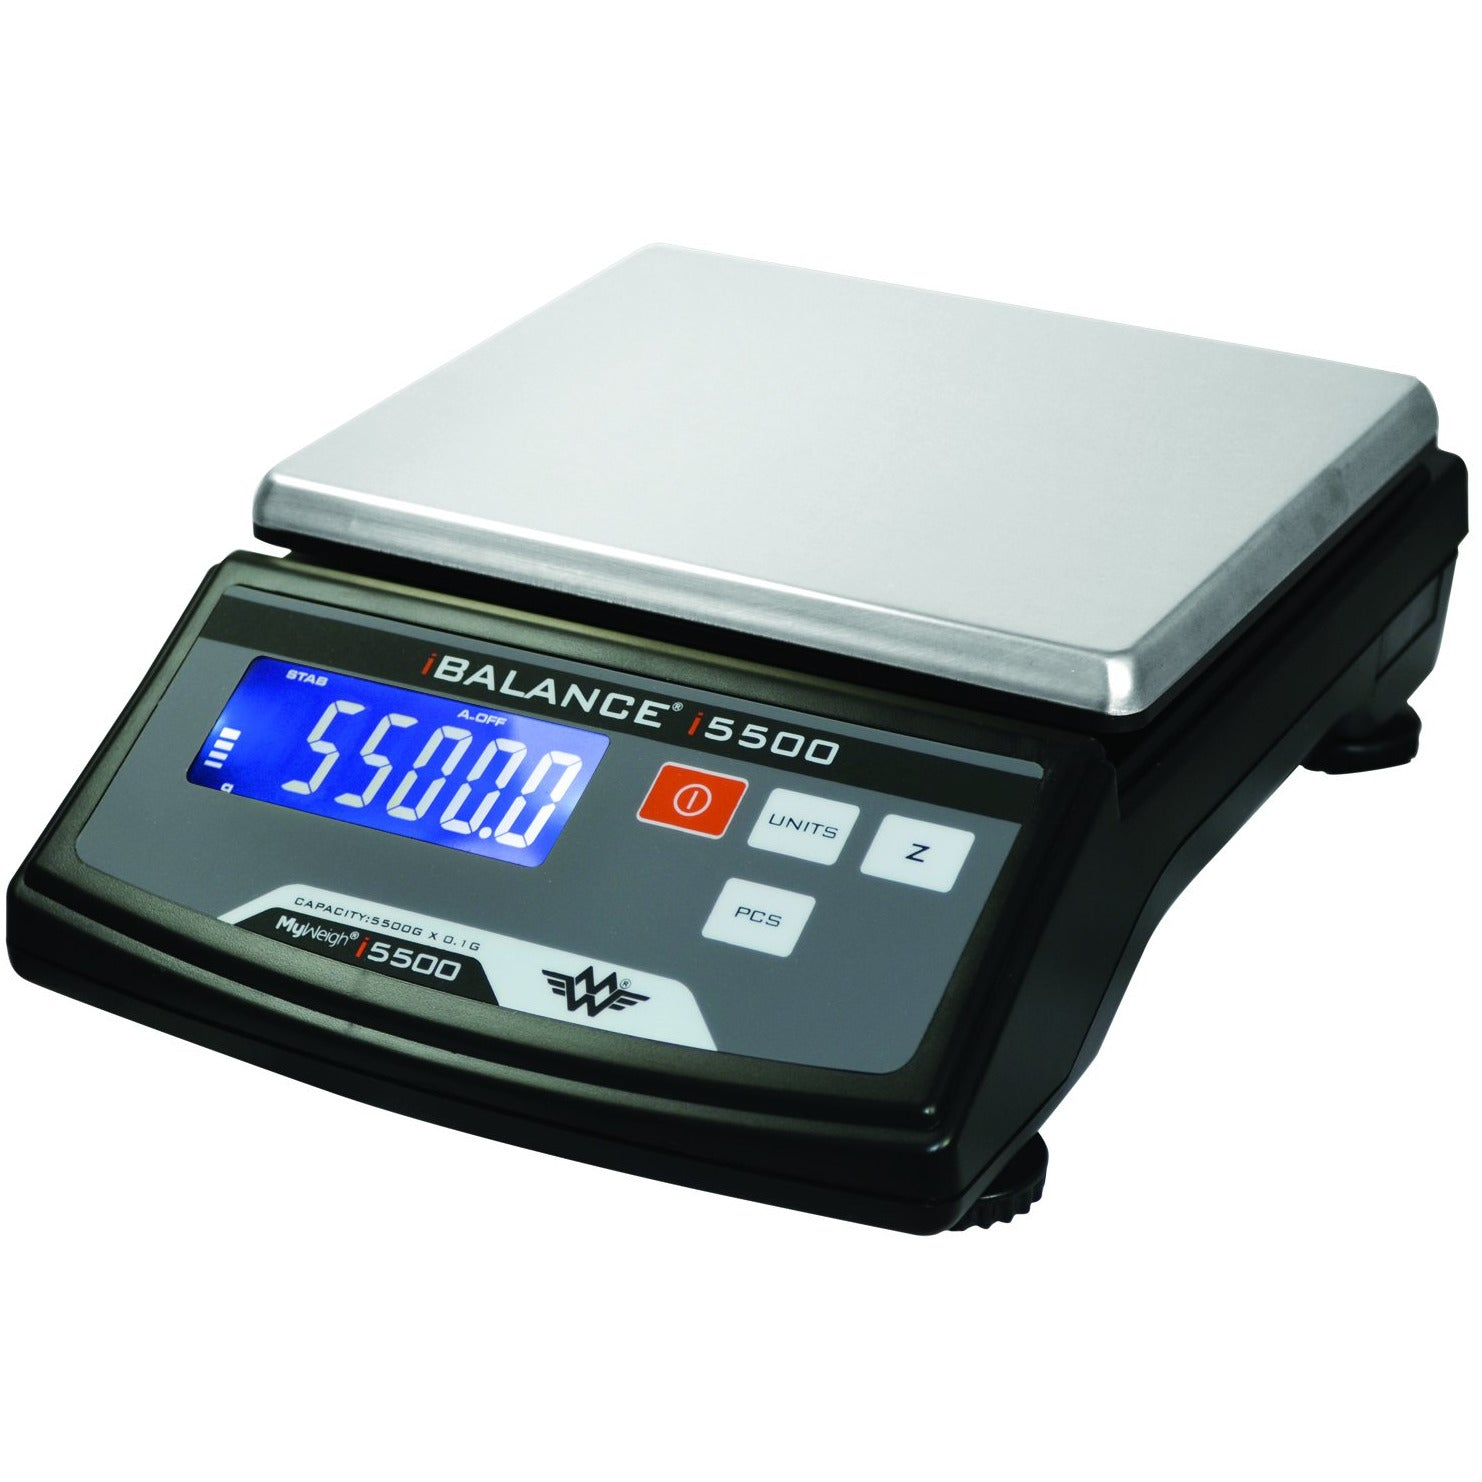 IB-5500 My Weigh iBalance 5500 5500g X 0.1g